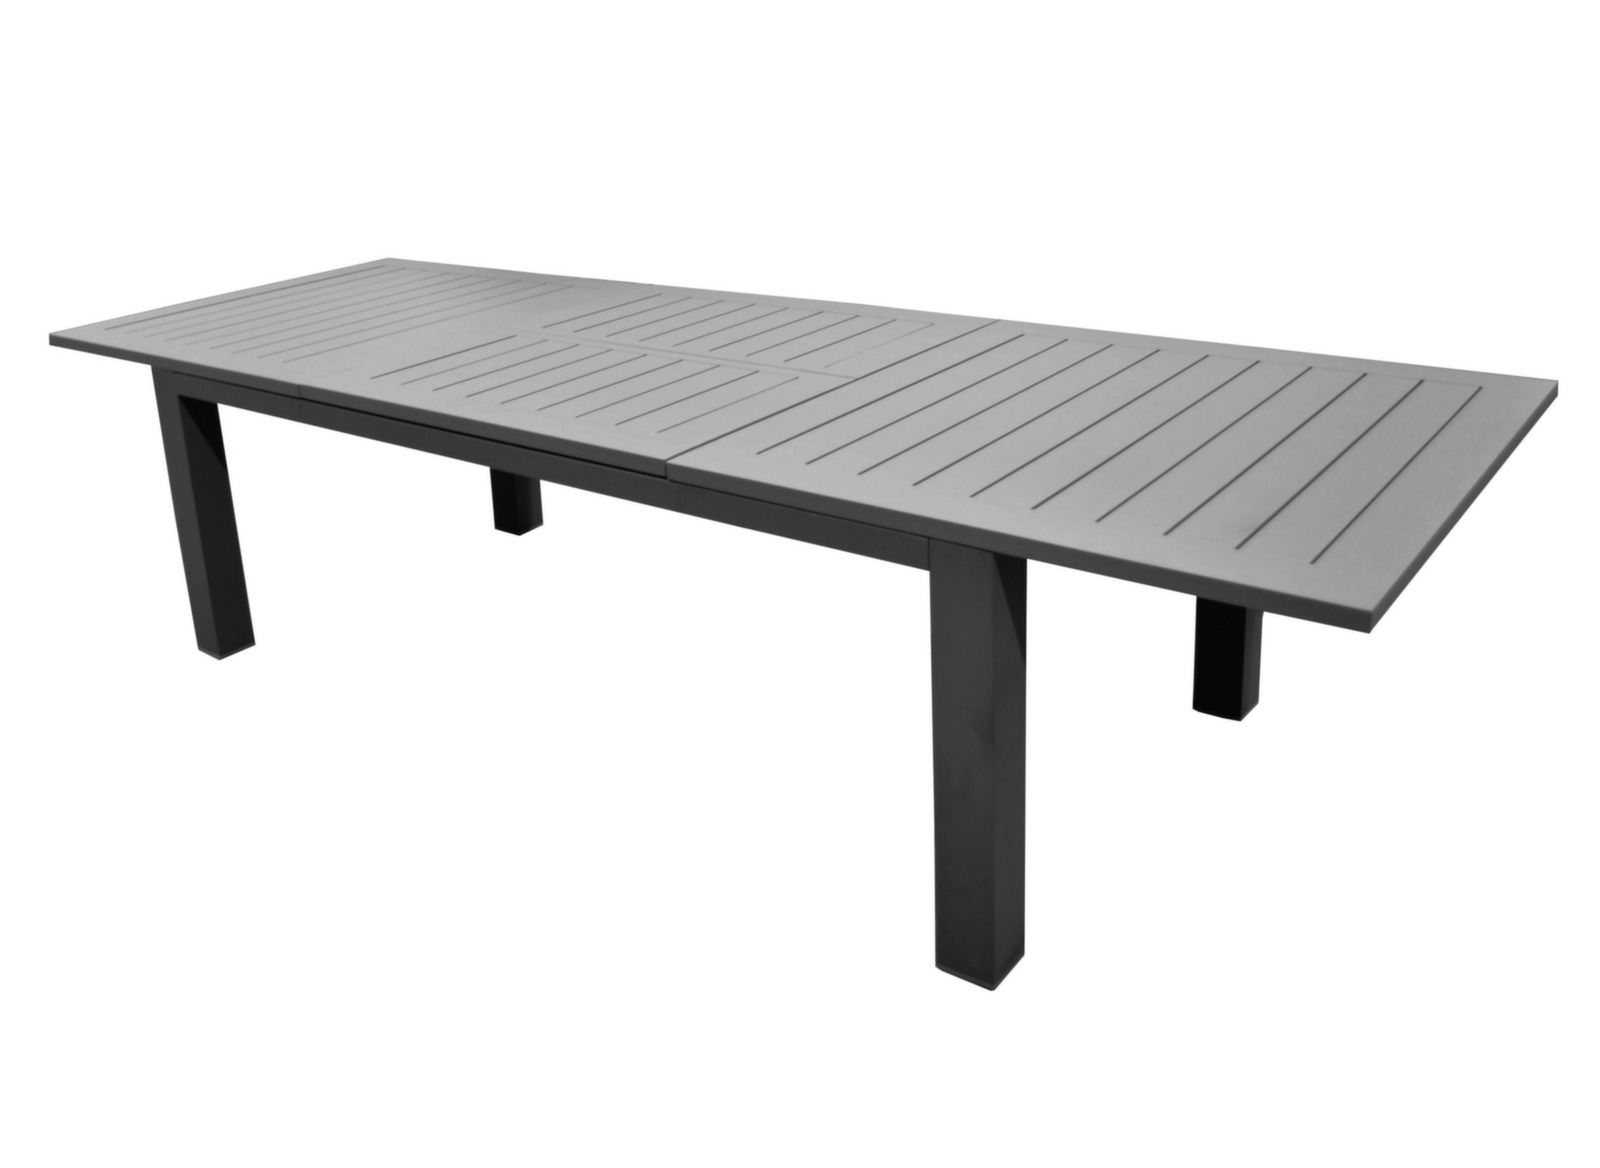 table de jardin aluminium 12 places aurore oc o. Black Bedroom Furniture Sets. Home Design Ideas